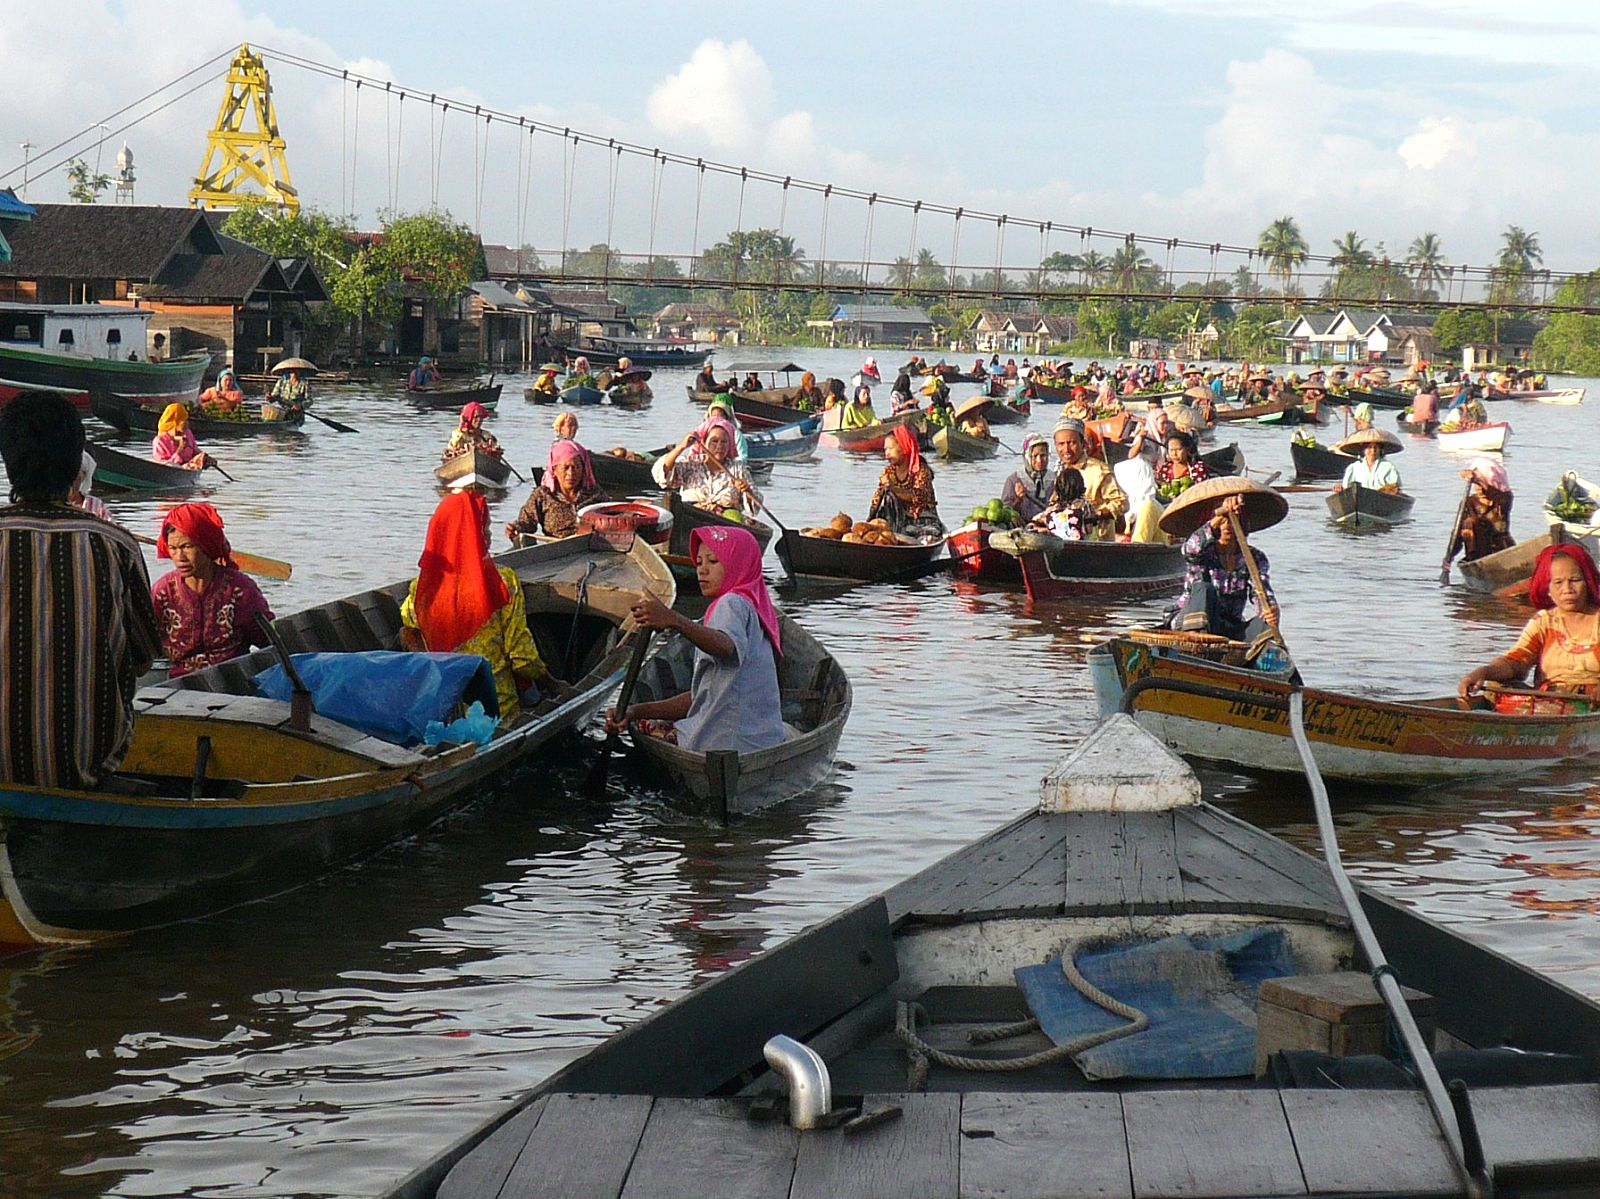 The amazing floating market at Kalimantan in Borneo.